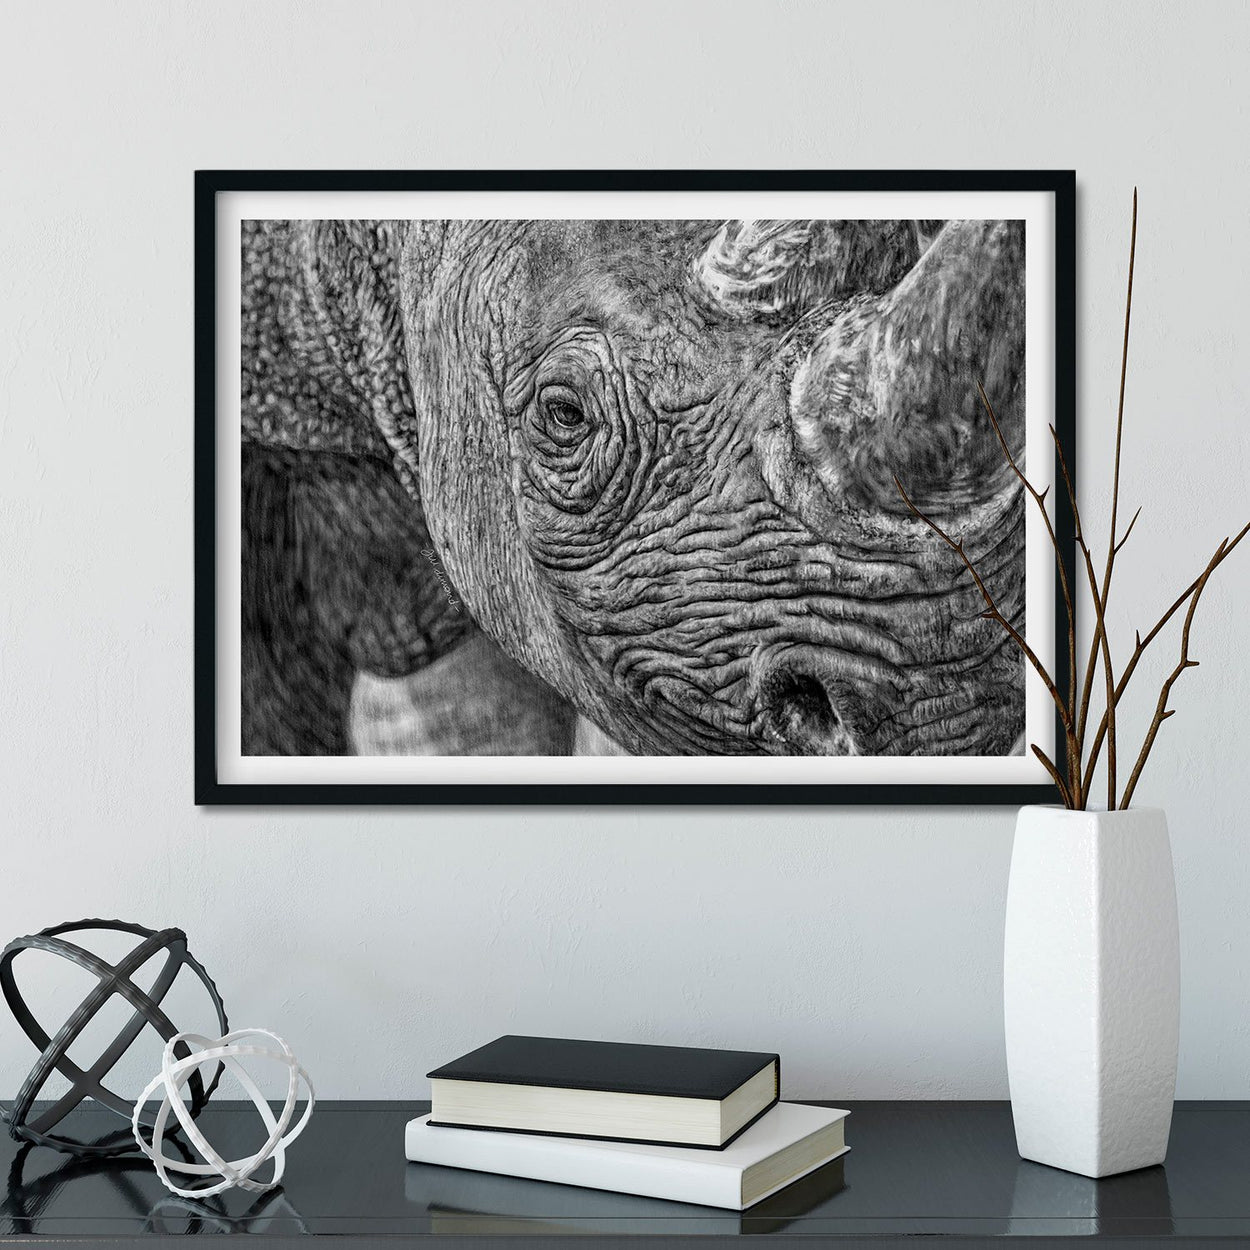 Rhino Wall Art Framed - The Thriving Wild